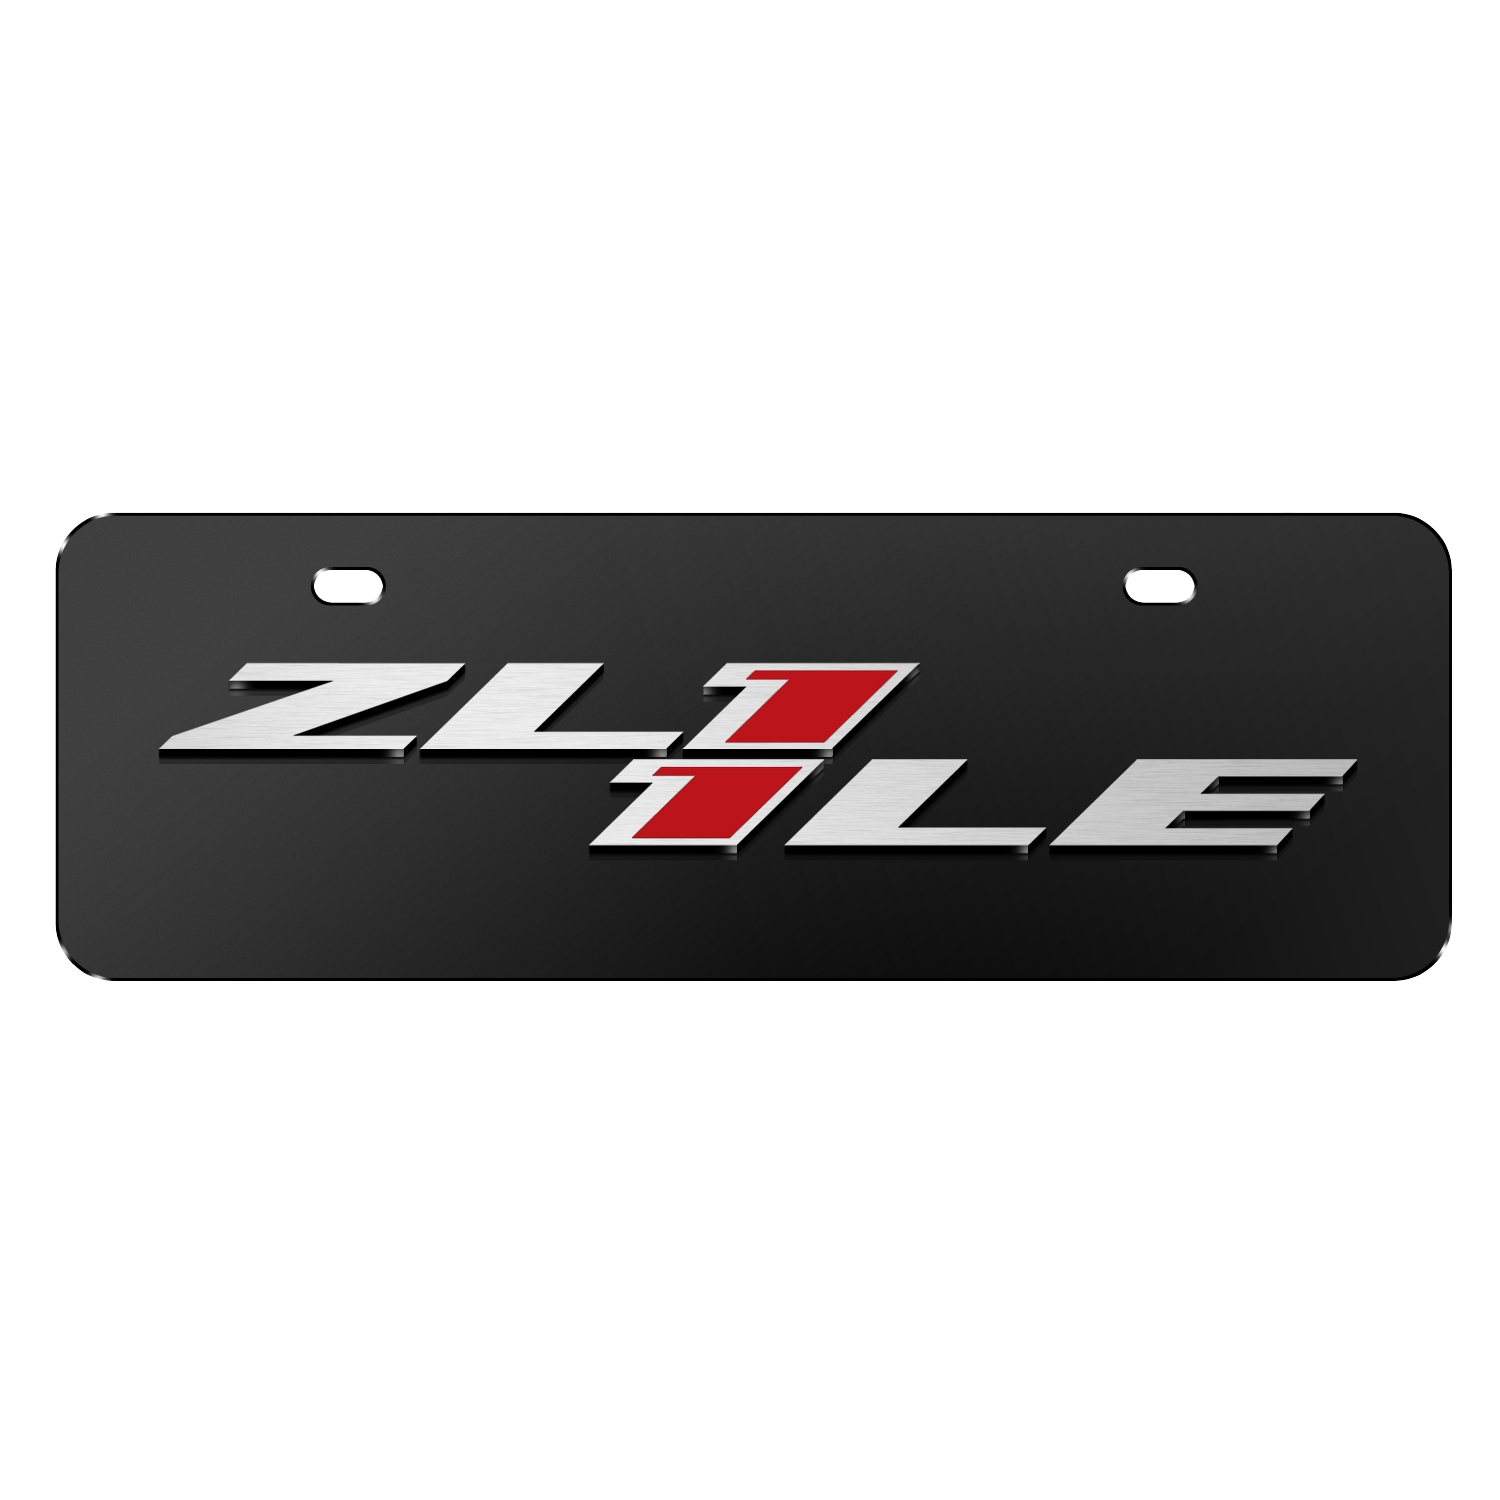 "Chevrolet 2016 Camaro ZL1-1LE 3D Logo Black 12""x4"" Half-Size Stainless Steel License Plate"